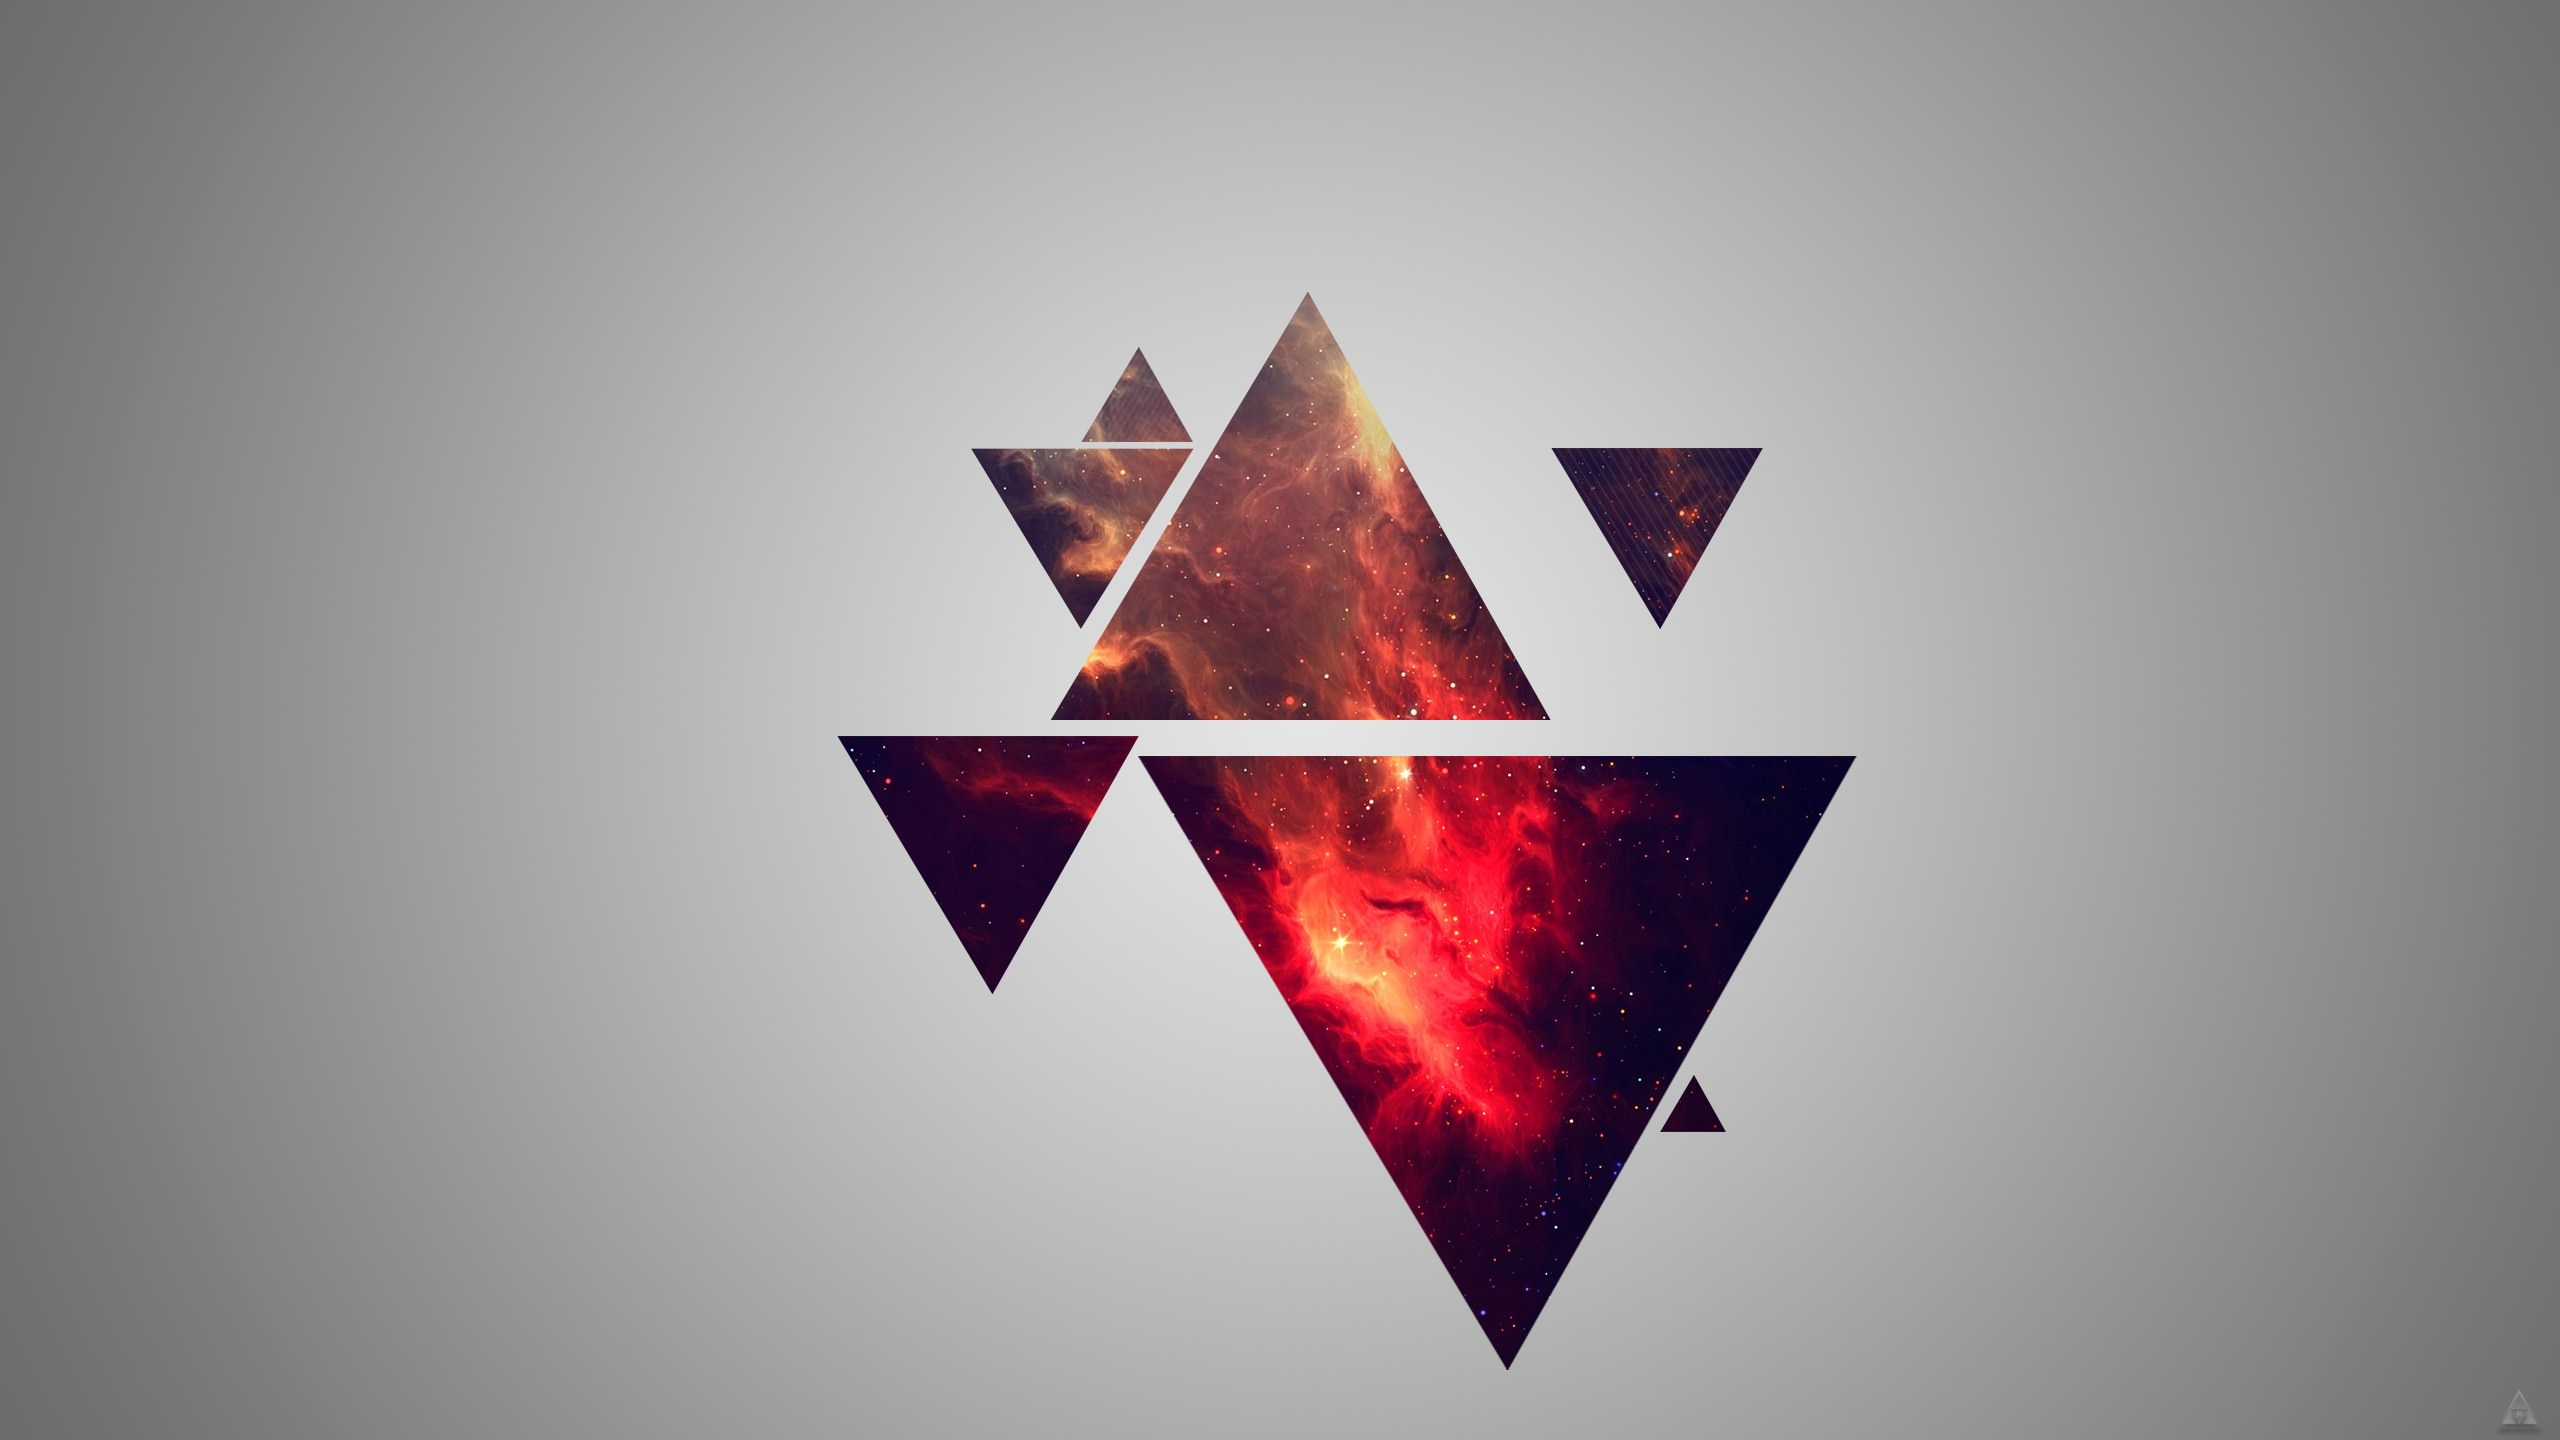 Abstract Hipster Minimalistic Nebulae Wallpaper DigitalArtio above is published to at Tuesday, February 03rd, 2015 by Boergeus and categorized grouped ...